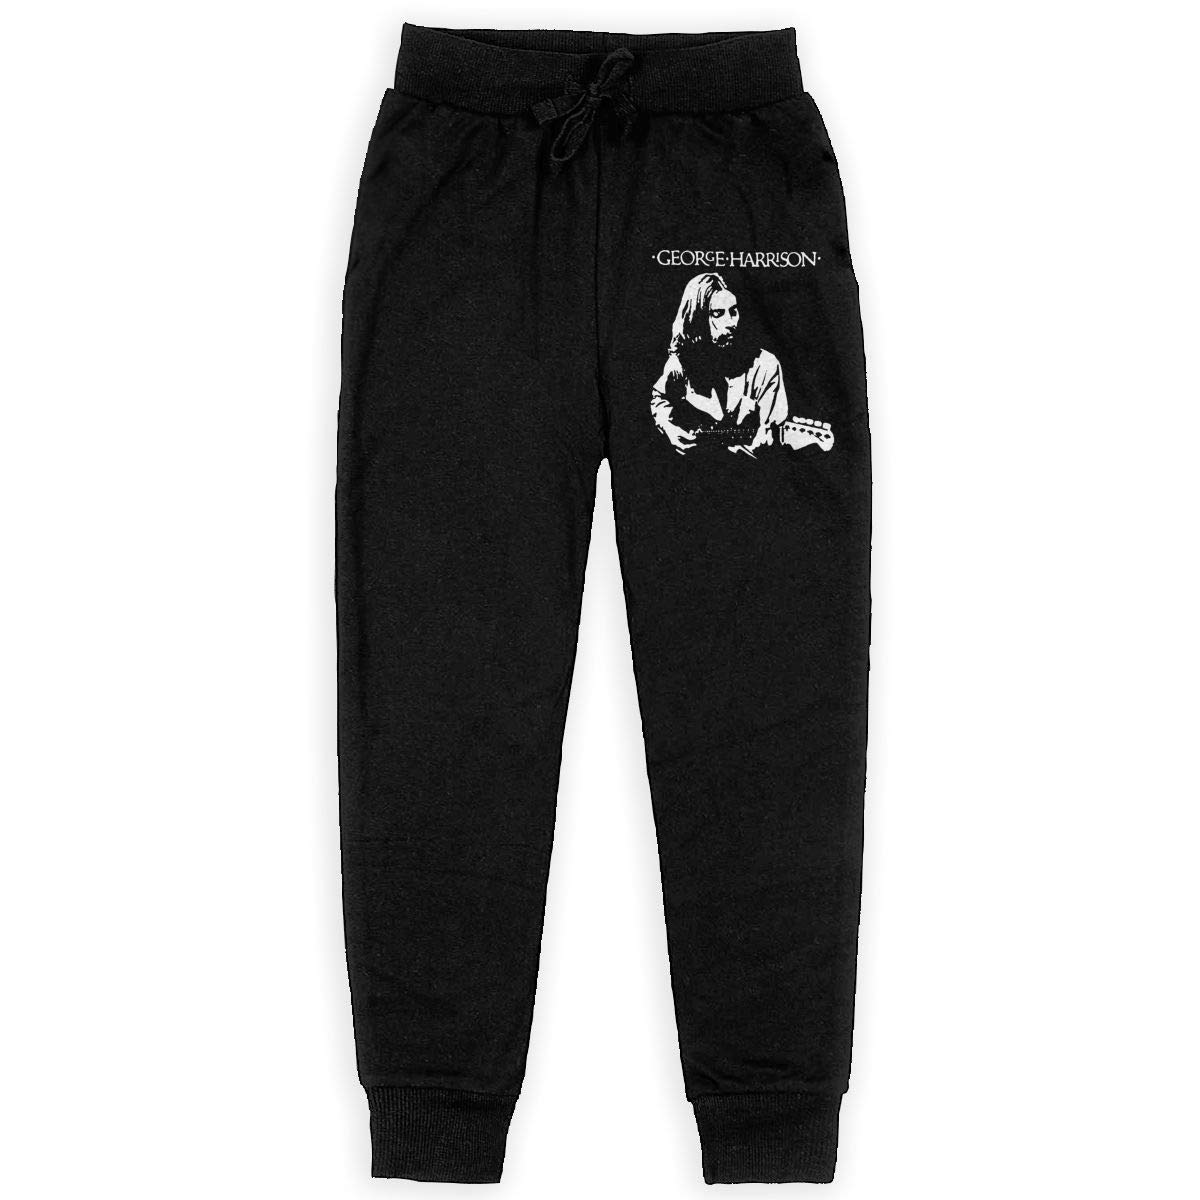 Social Come Distortion LETE Big Boys Girls Casual Jogger Soft Training Pants Elastic Waist